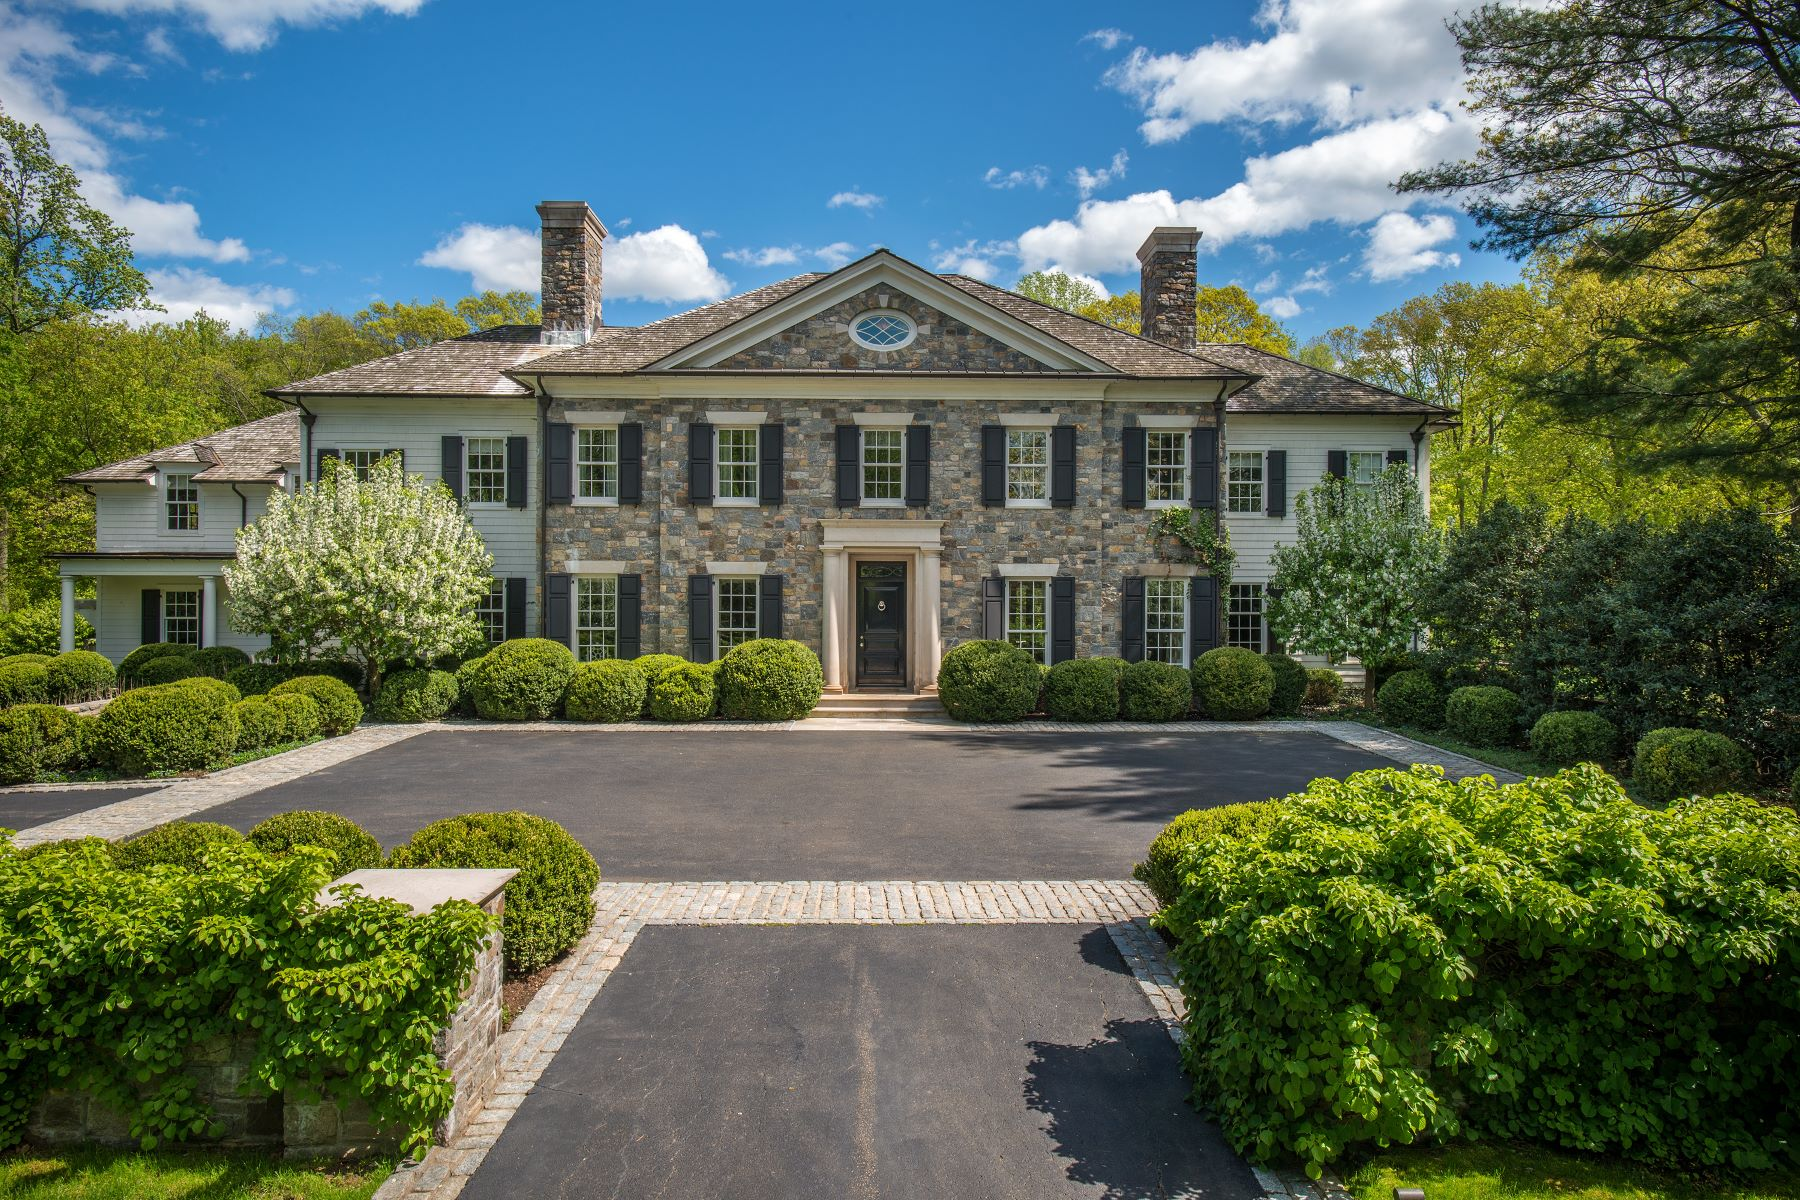 Single Family Homes for Active at 33 Sunset Hill Road New Canaan, Connecticut 06840 United States